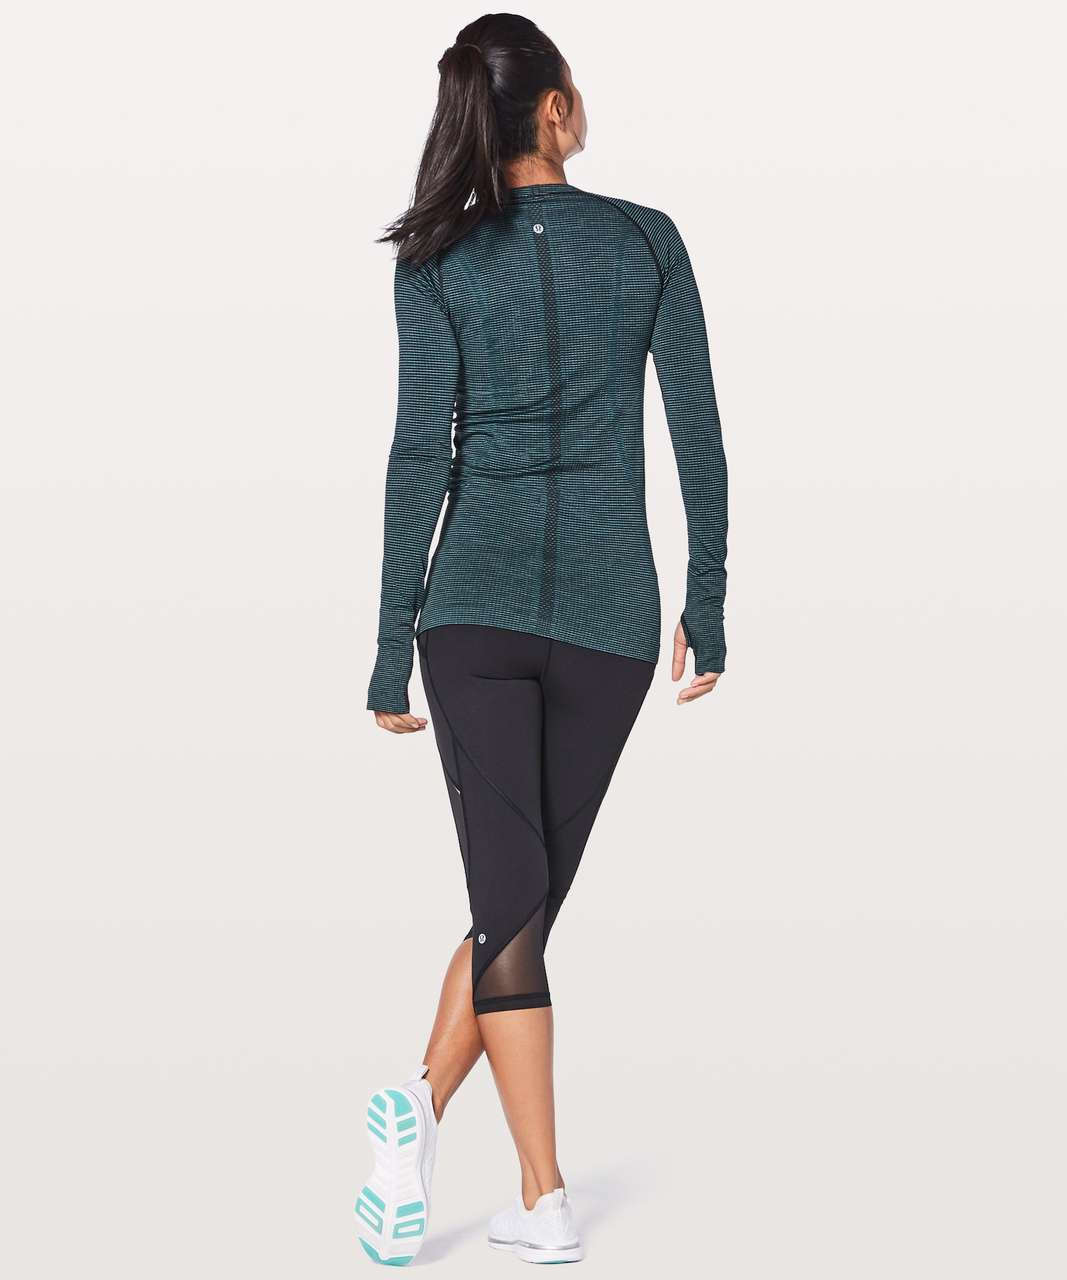 Lululemon Swiftly Tech Long Sleeve Crew - Dark Maritime / Black / Lavender / Blue